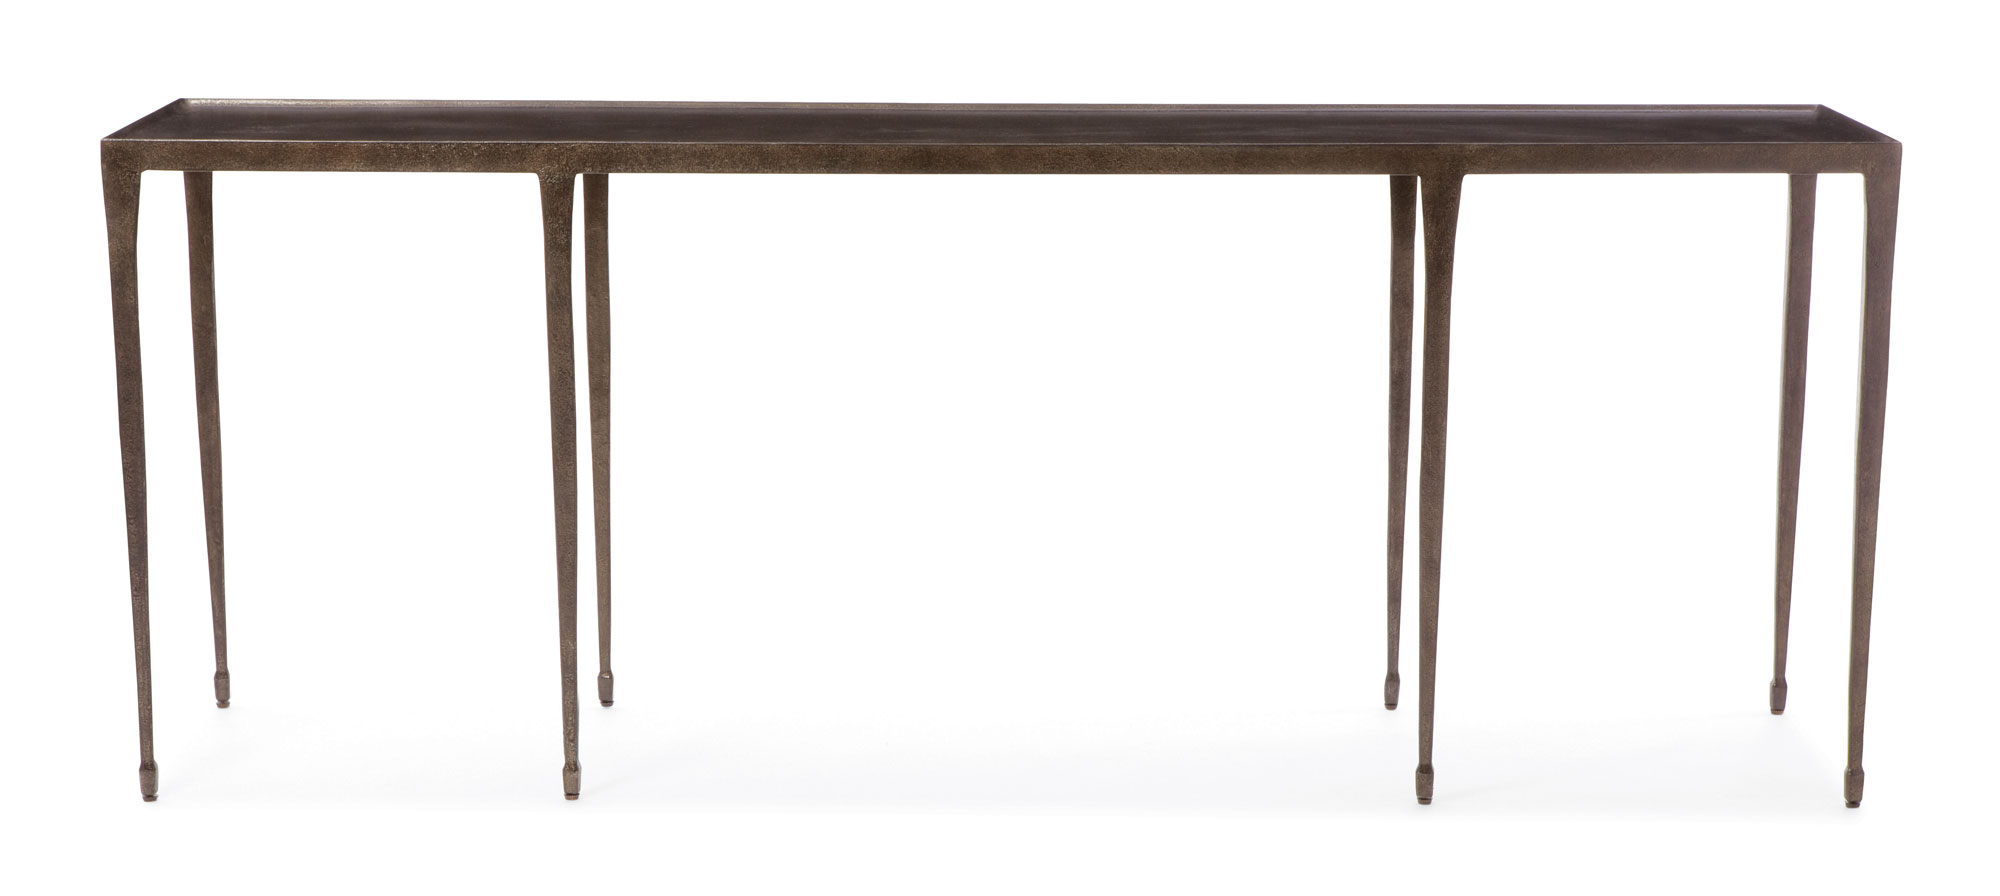 Bernhardt Console Table Halden 84 Inch Hammered Iron Distressed Throughout Silviano 84 Inch Console Tables (View 2 of 20)